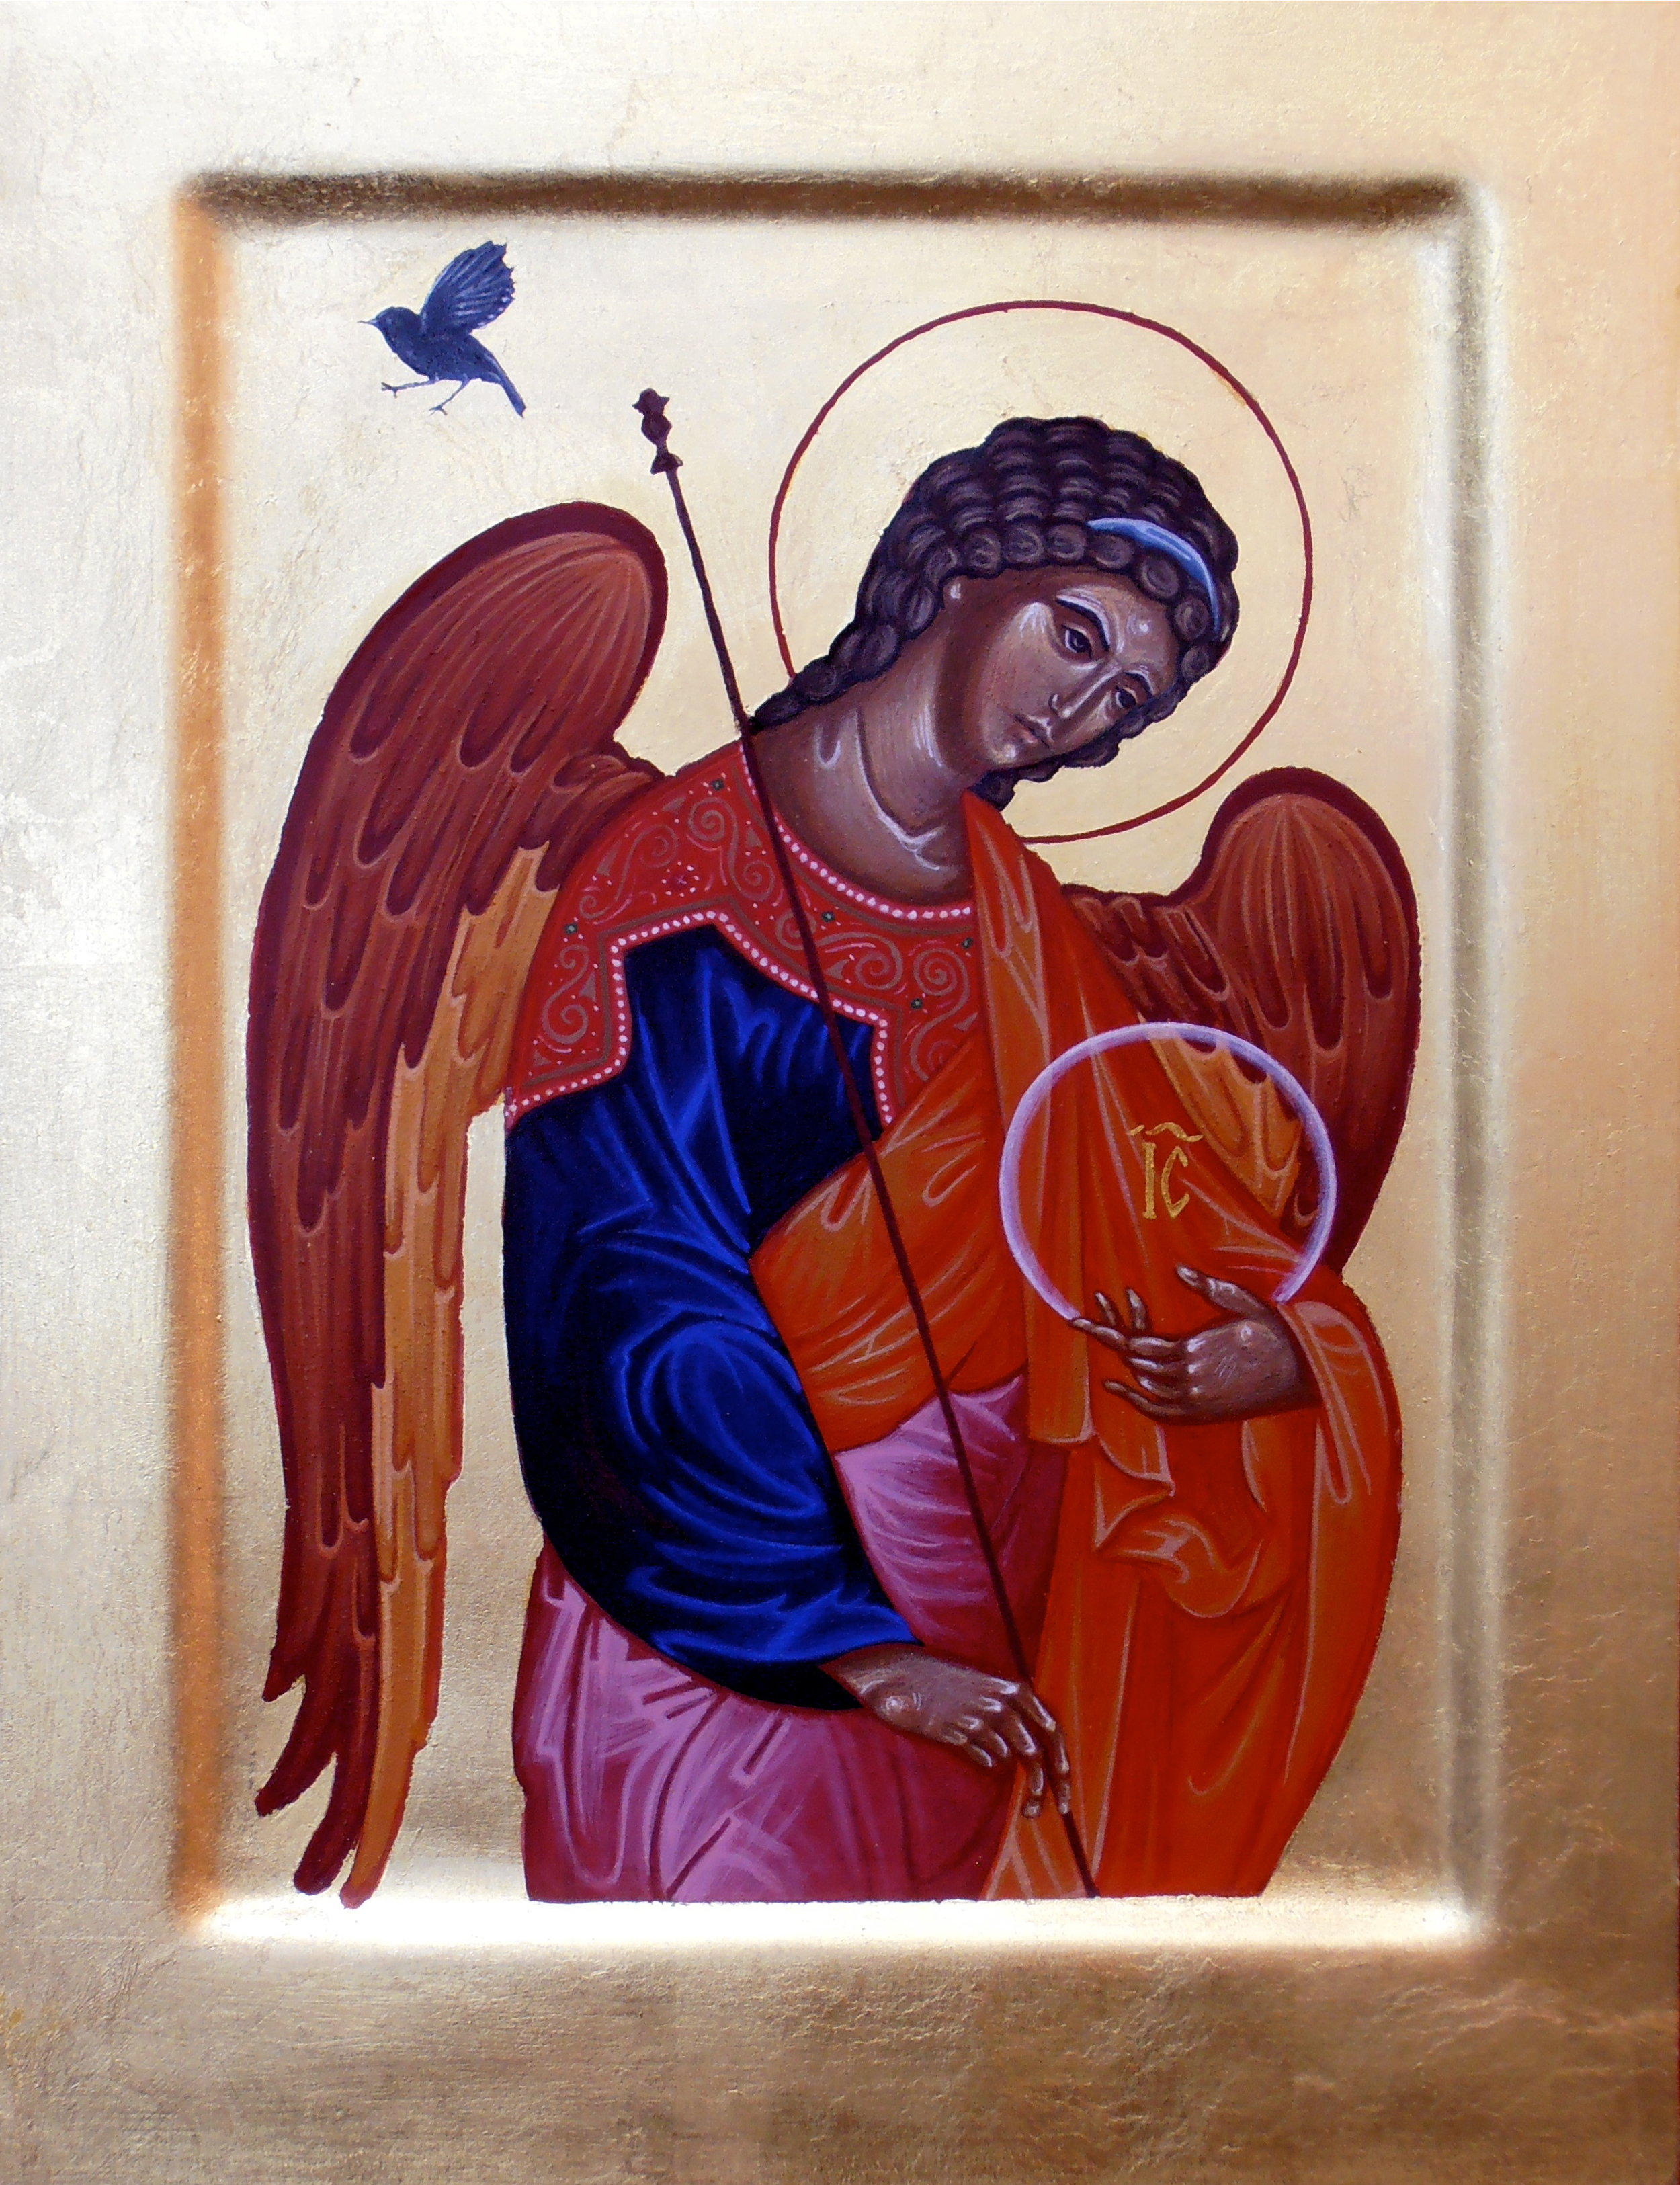 The Black Robin and Archangel Michael. Tempera and gold leaf on gesso panel. 21 cm x 27 cm. 2013